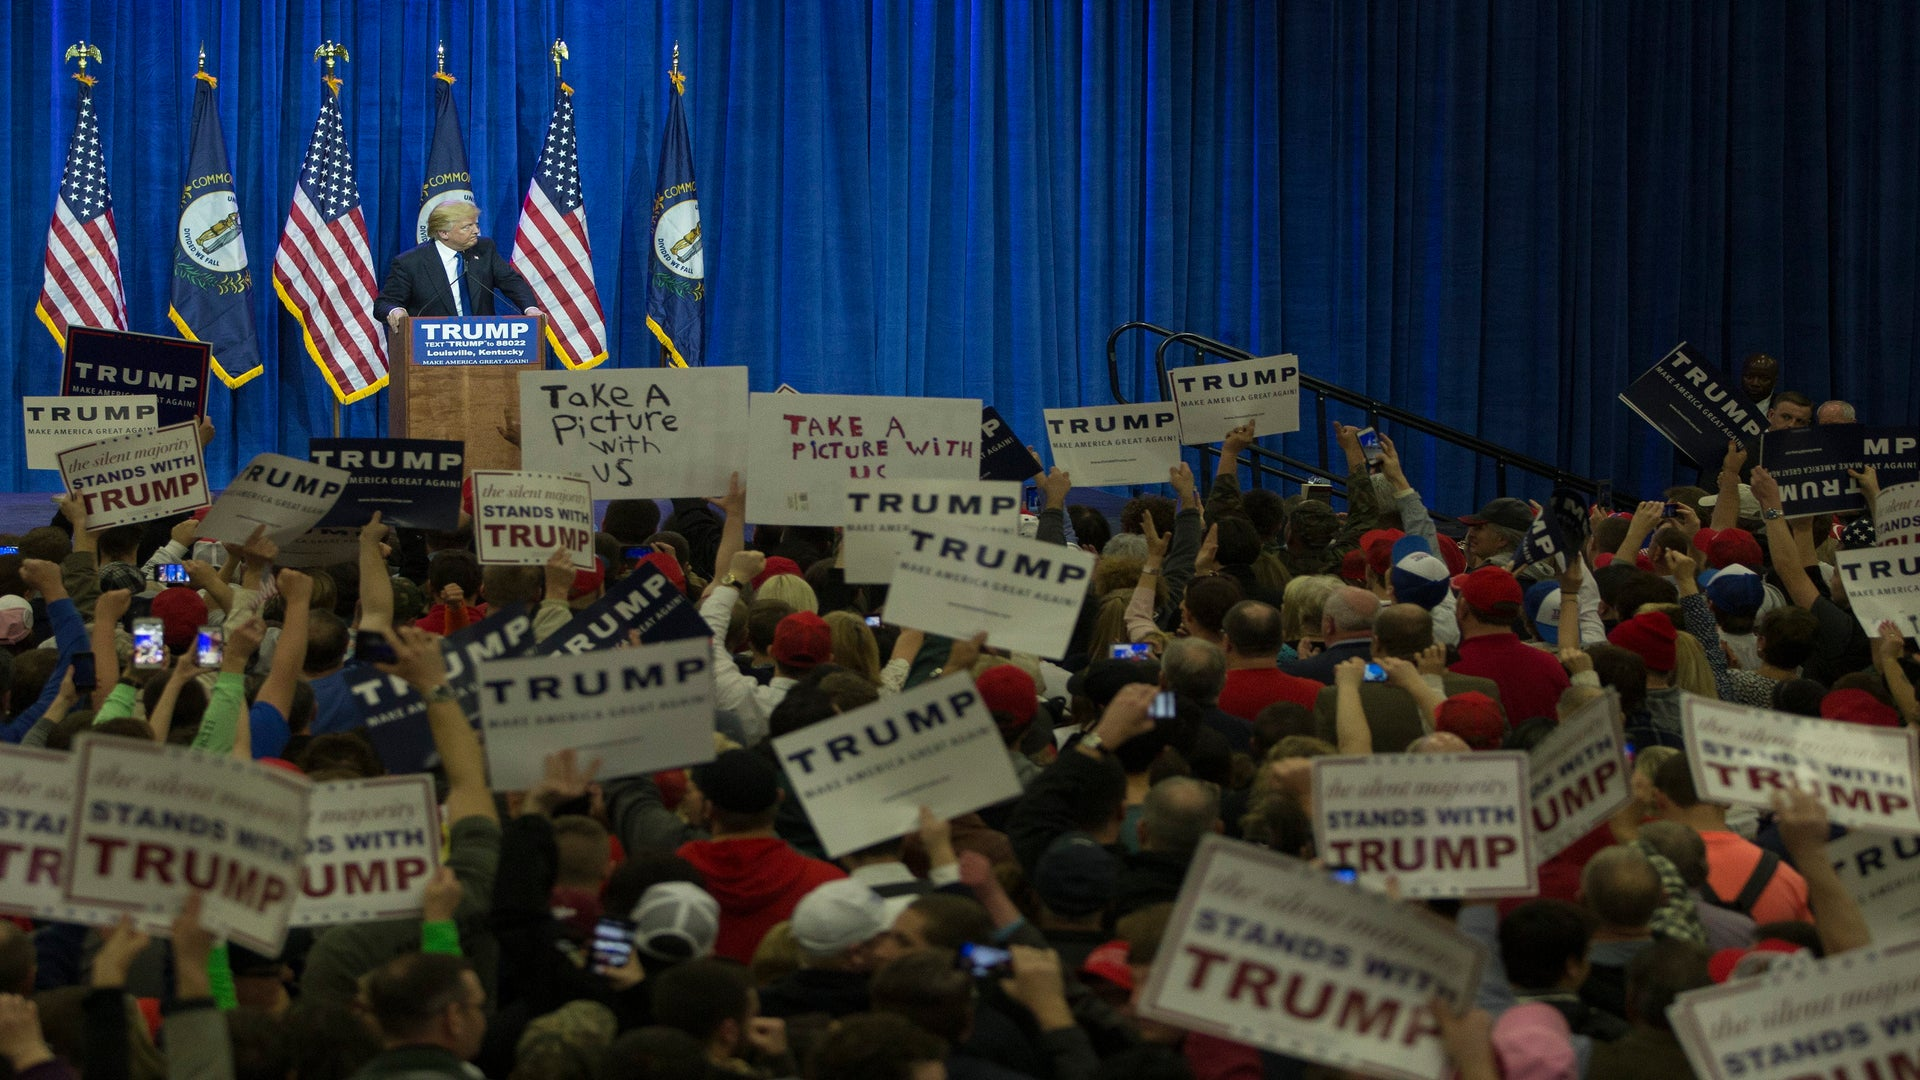 Federal Judge Rules President Trump Incited Violence At Rally As Candidate